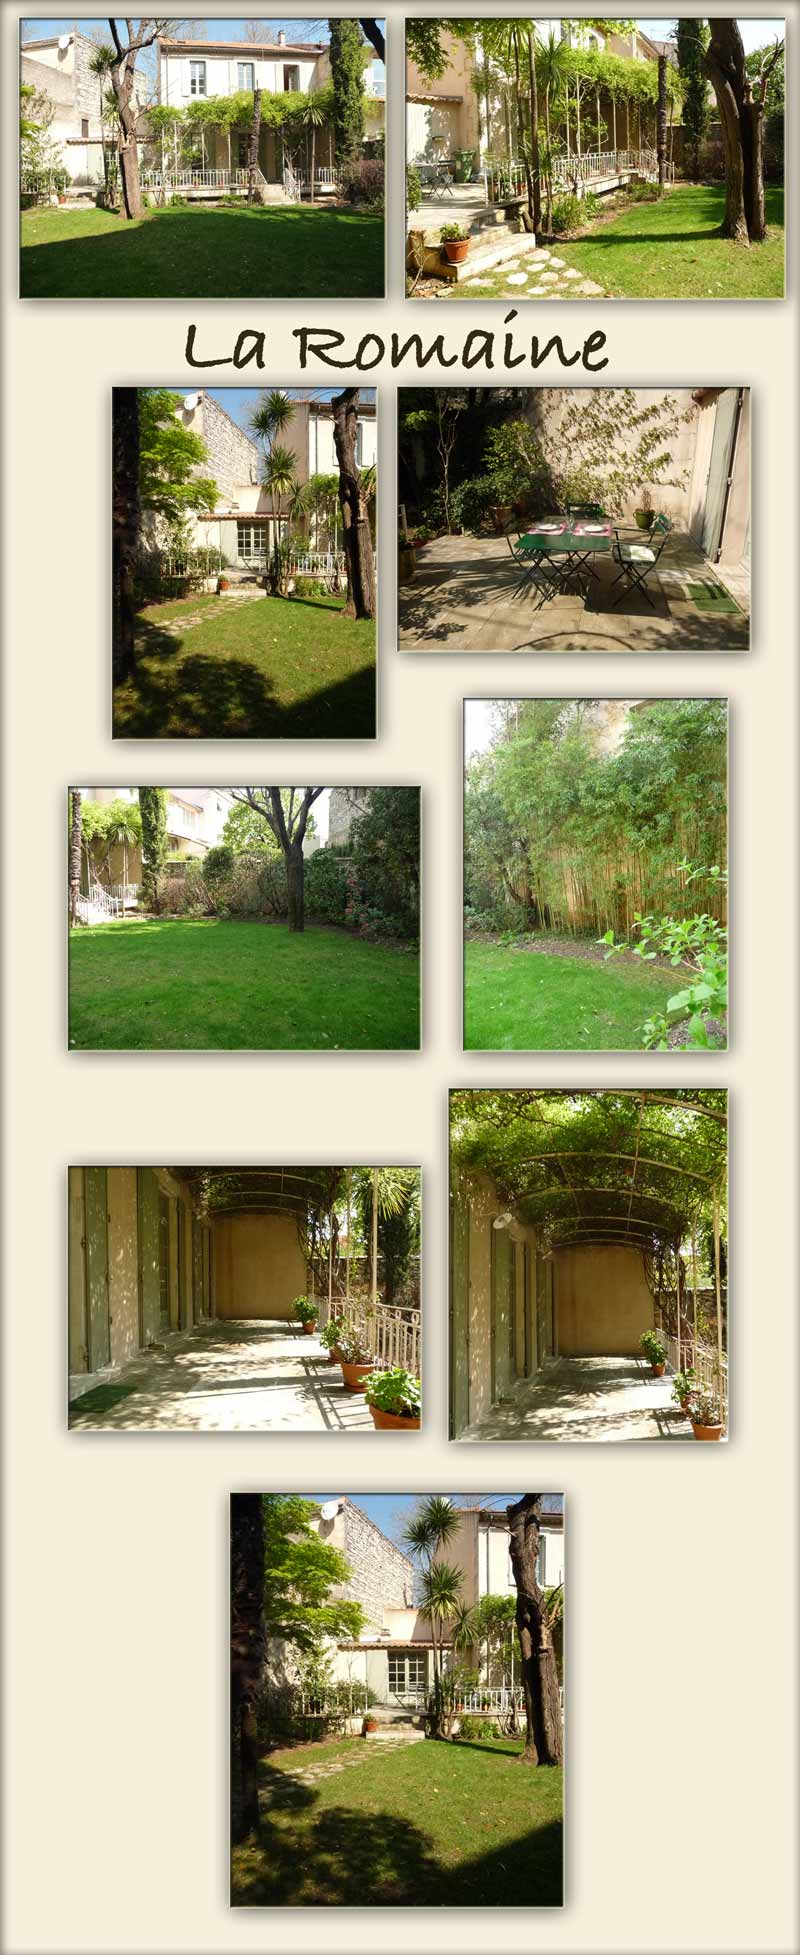 photos of the large garden of La Romaine, a villa Gard, Nimes villa, south France self catering gite - peace and quiet, old trees, shaded terrace